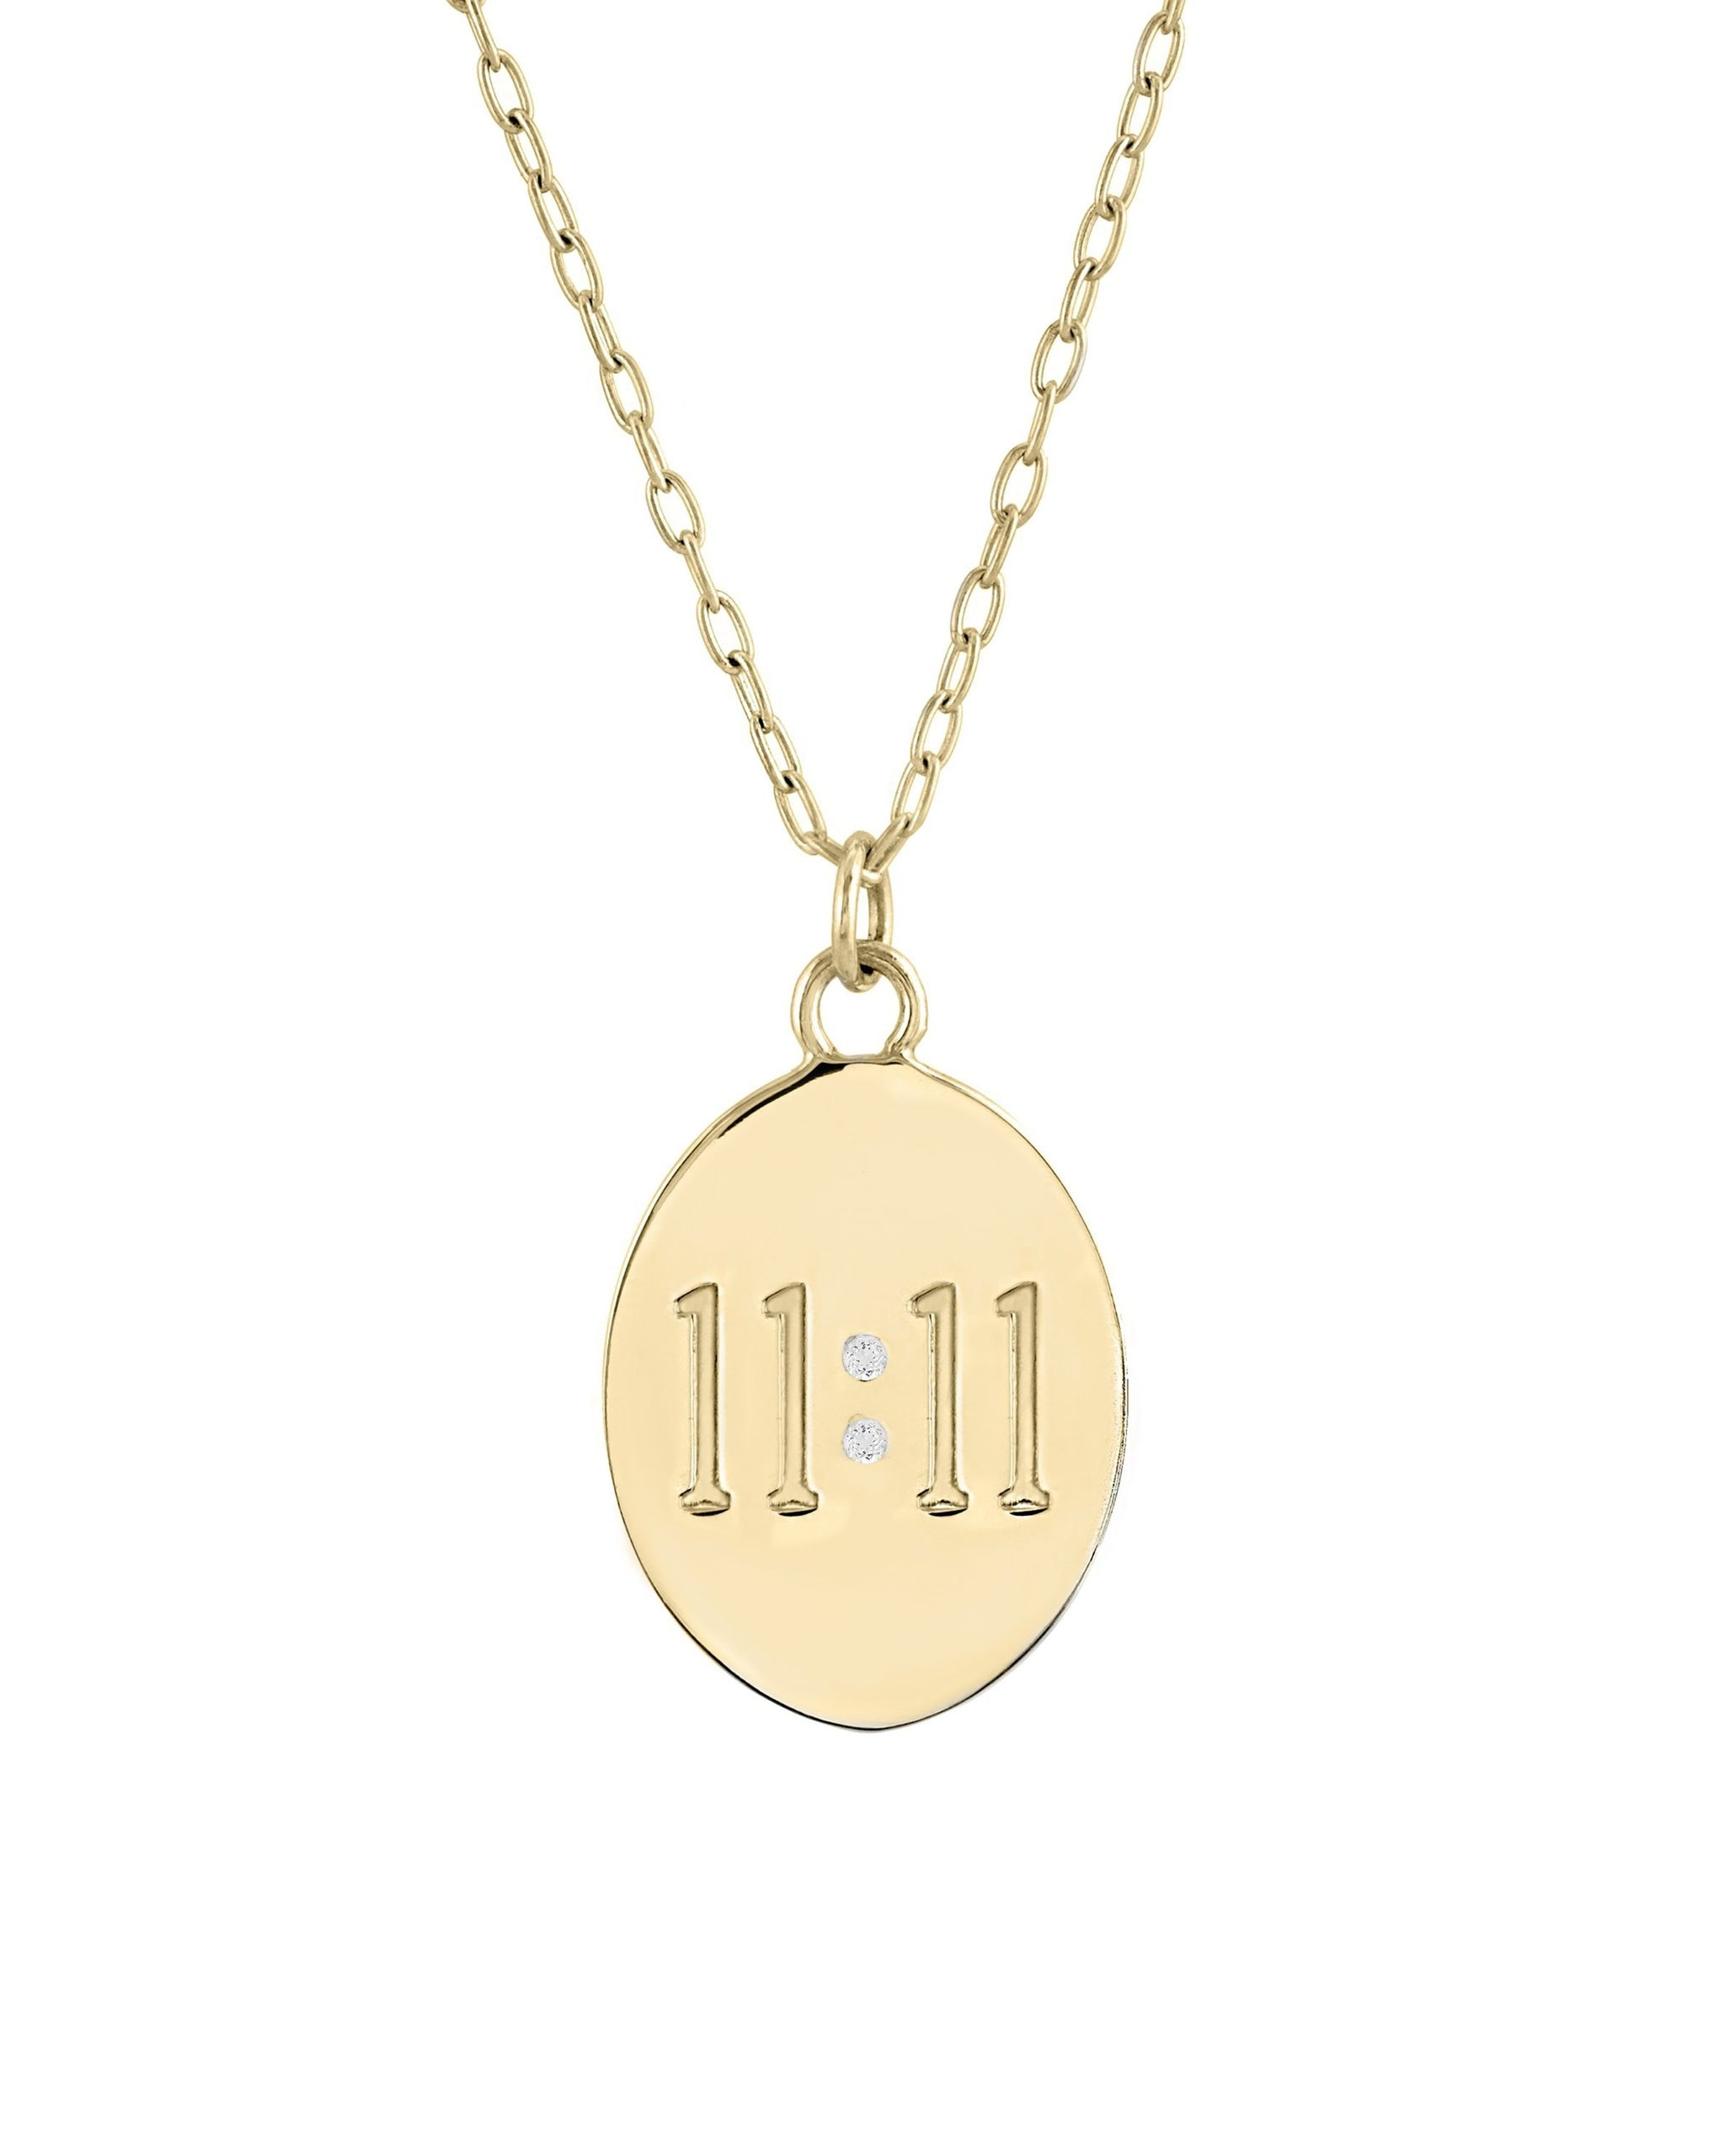 "11:11 Necklace, Oval Medallion with 11:11 engraved and two 1mm semi-precious stones, ""make a wish"" engraved on the back, 14k gold vermeil, handmade by Turquoise + Tobacco in Los Angeles, California"